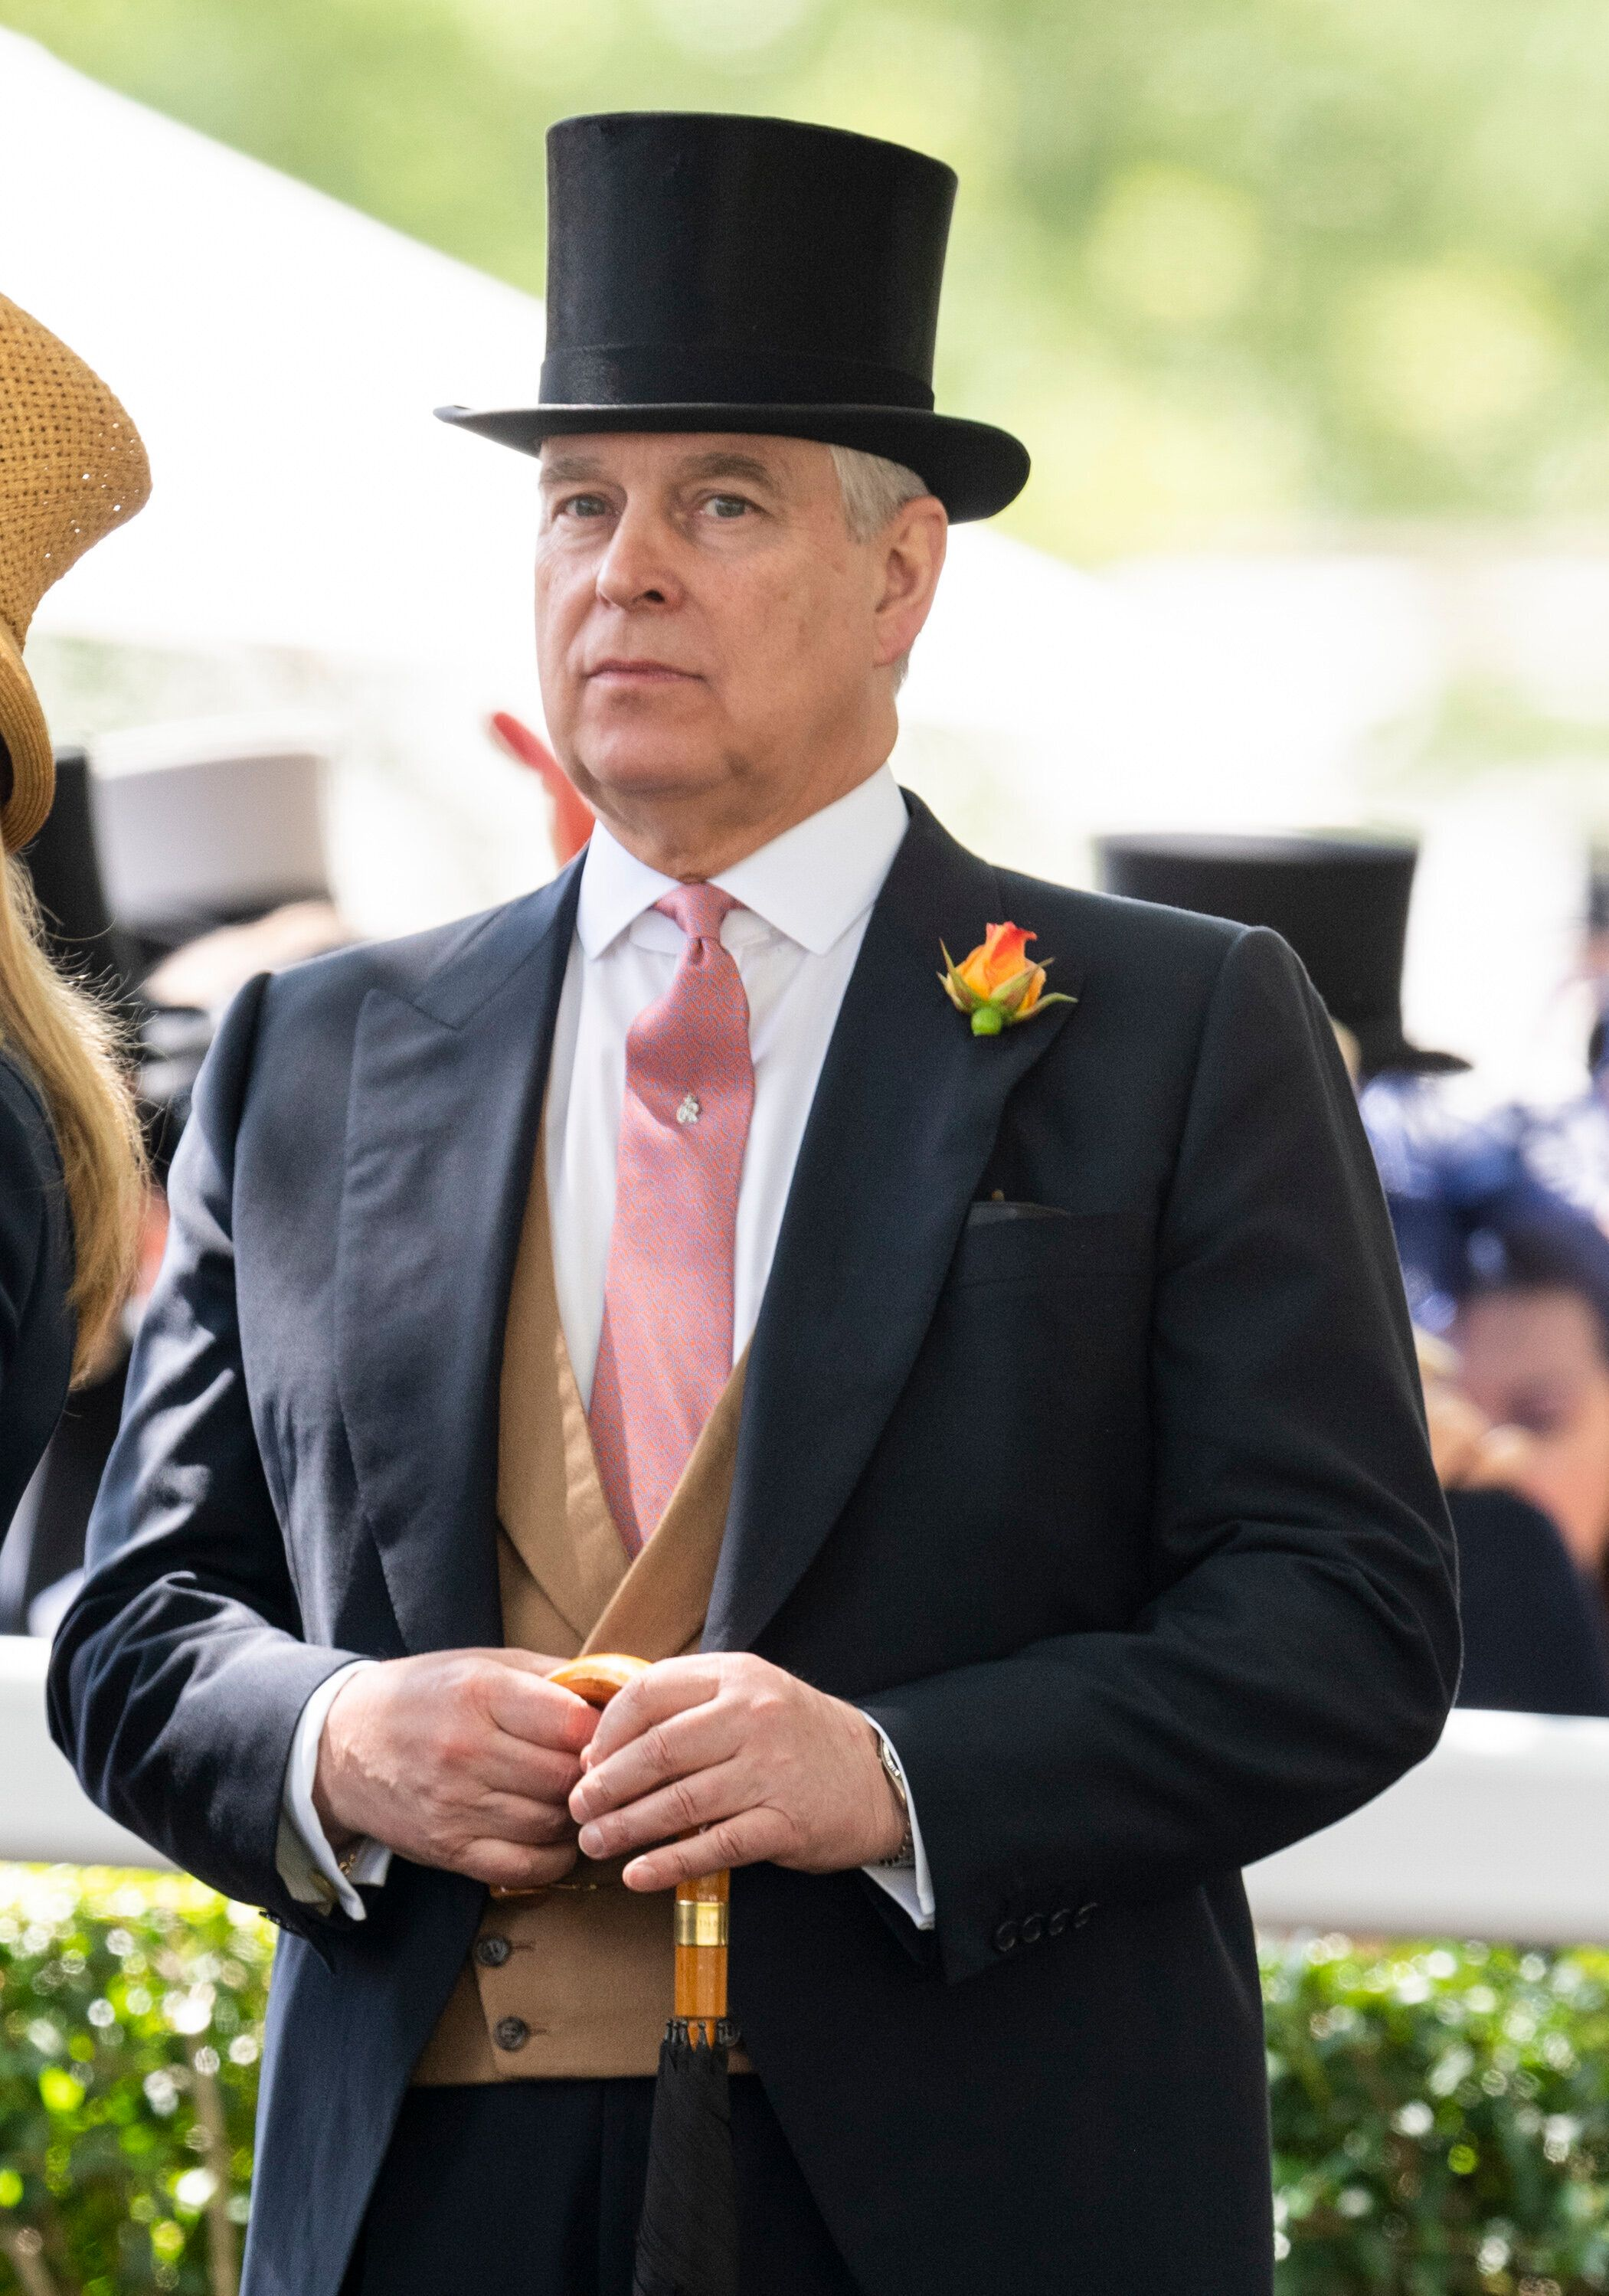 Prince Andrew, Duke of York, seen in 2019, has denied the sex abuse allegations against him related to Epstein.